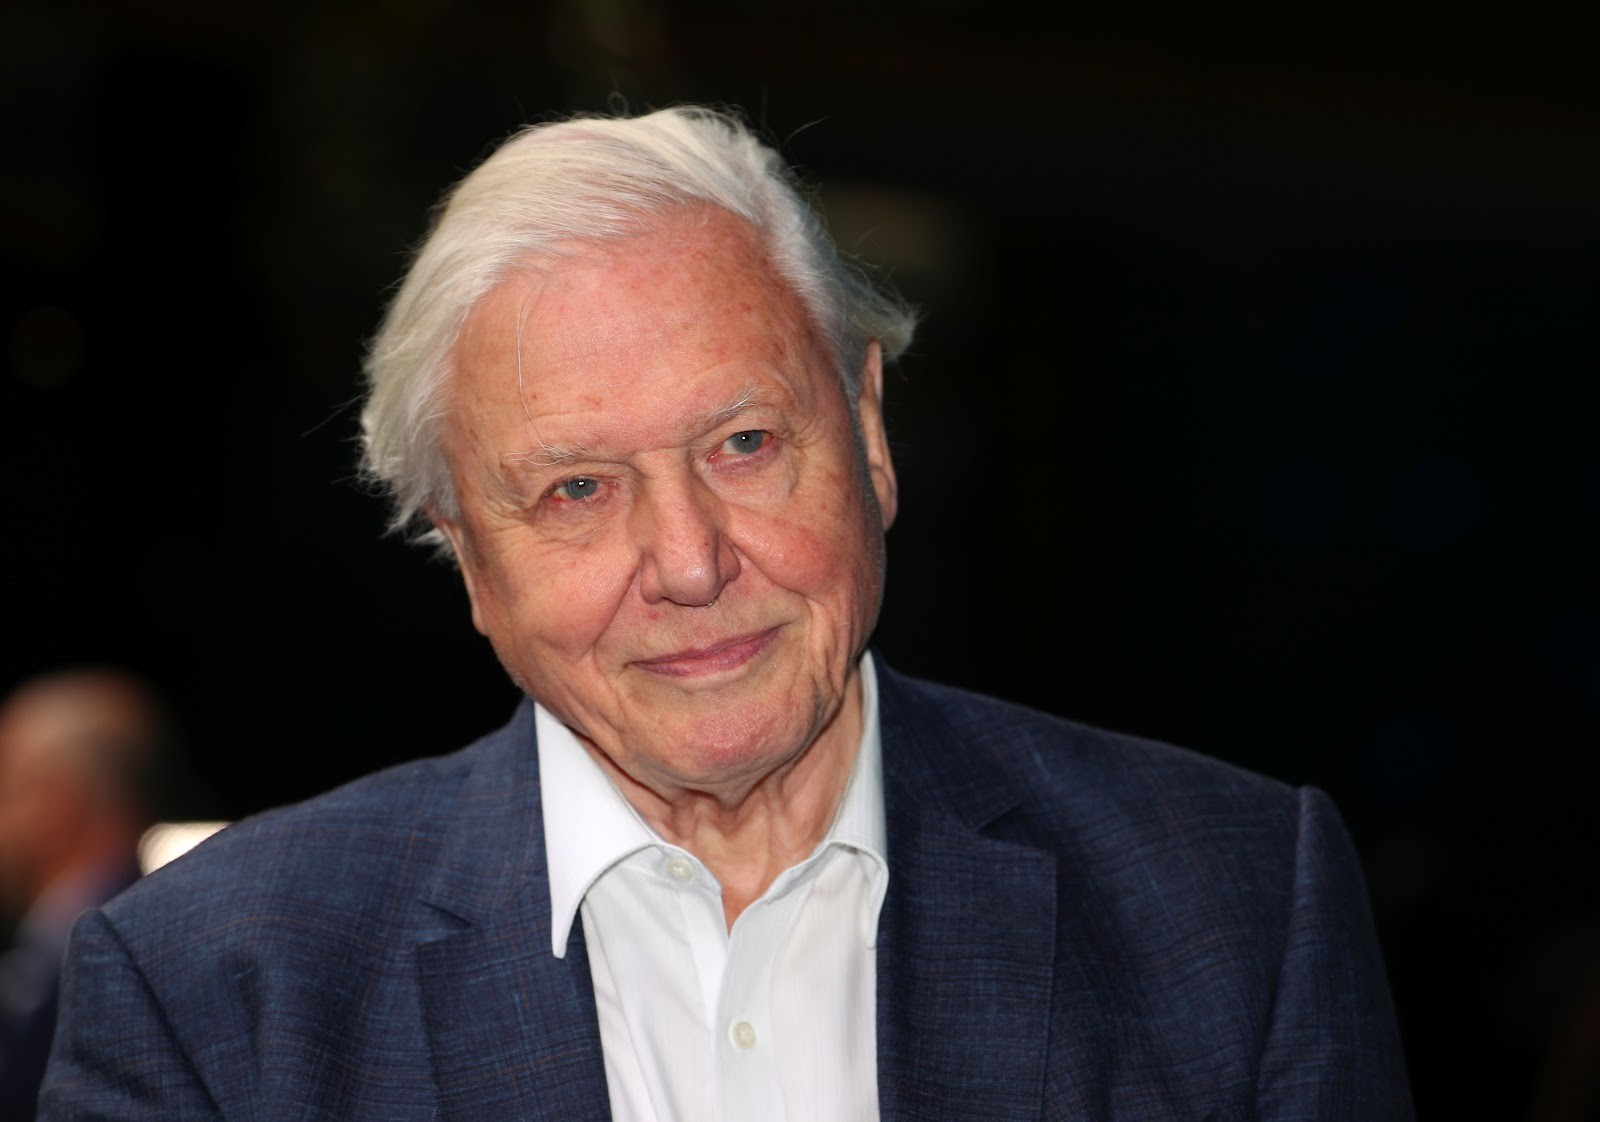 Attenborough at the premiere of Blue Planet II in London.